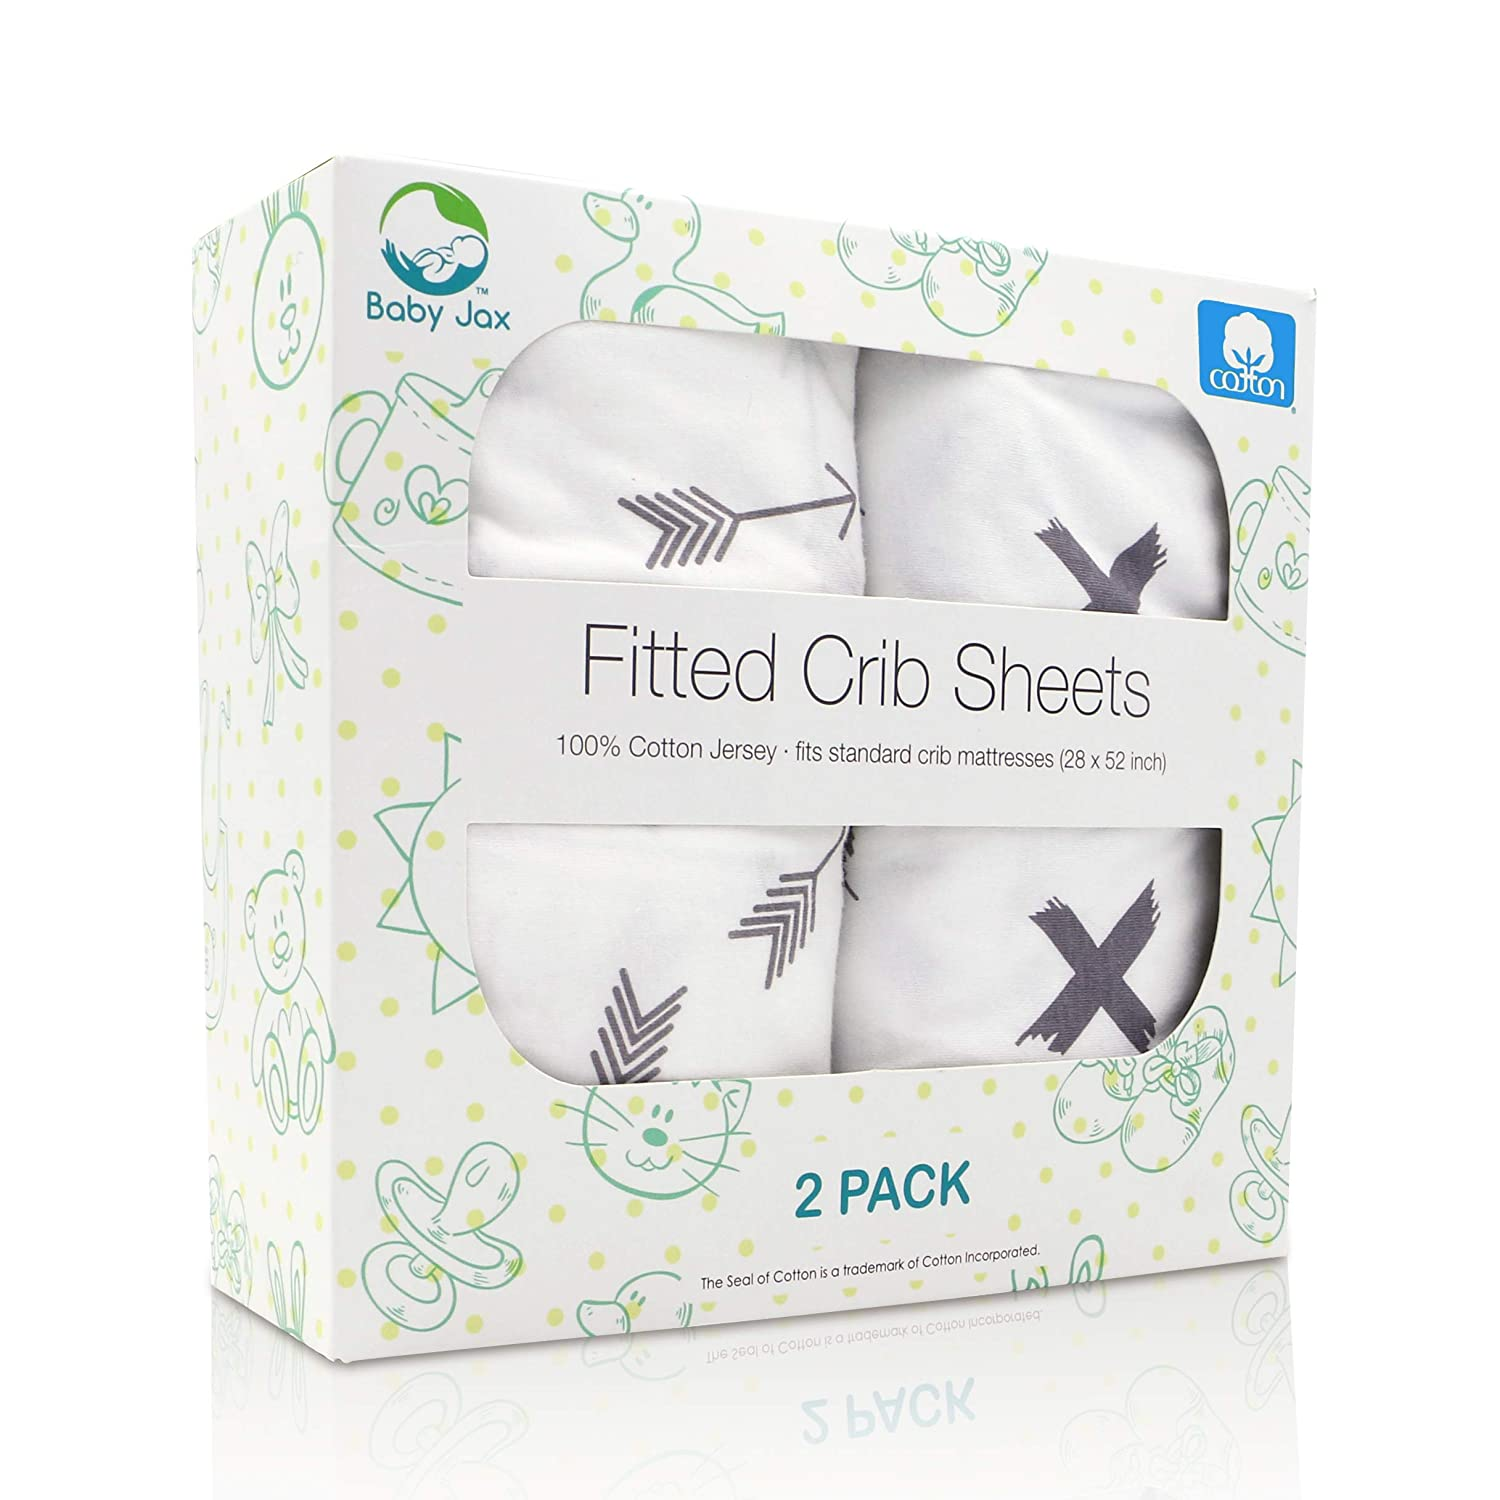 Premium Grey Fitted Crib Sheet Set (2 Pack) | Full Size | 100% Jersey Cotton | Certified No Harmful Chemicals | Adorable Modern Gray Arrows + X Designs | Infant Baby Crib Sheets for Boys and Girls